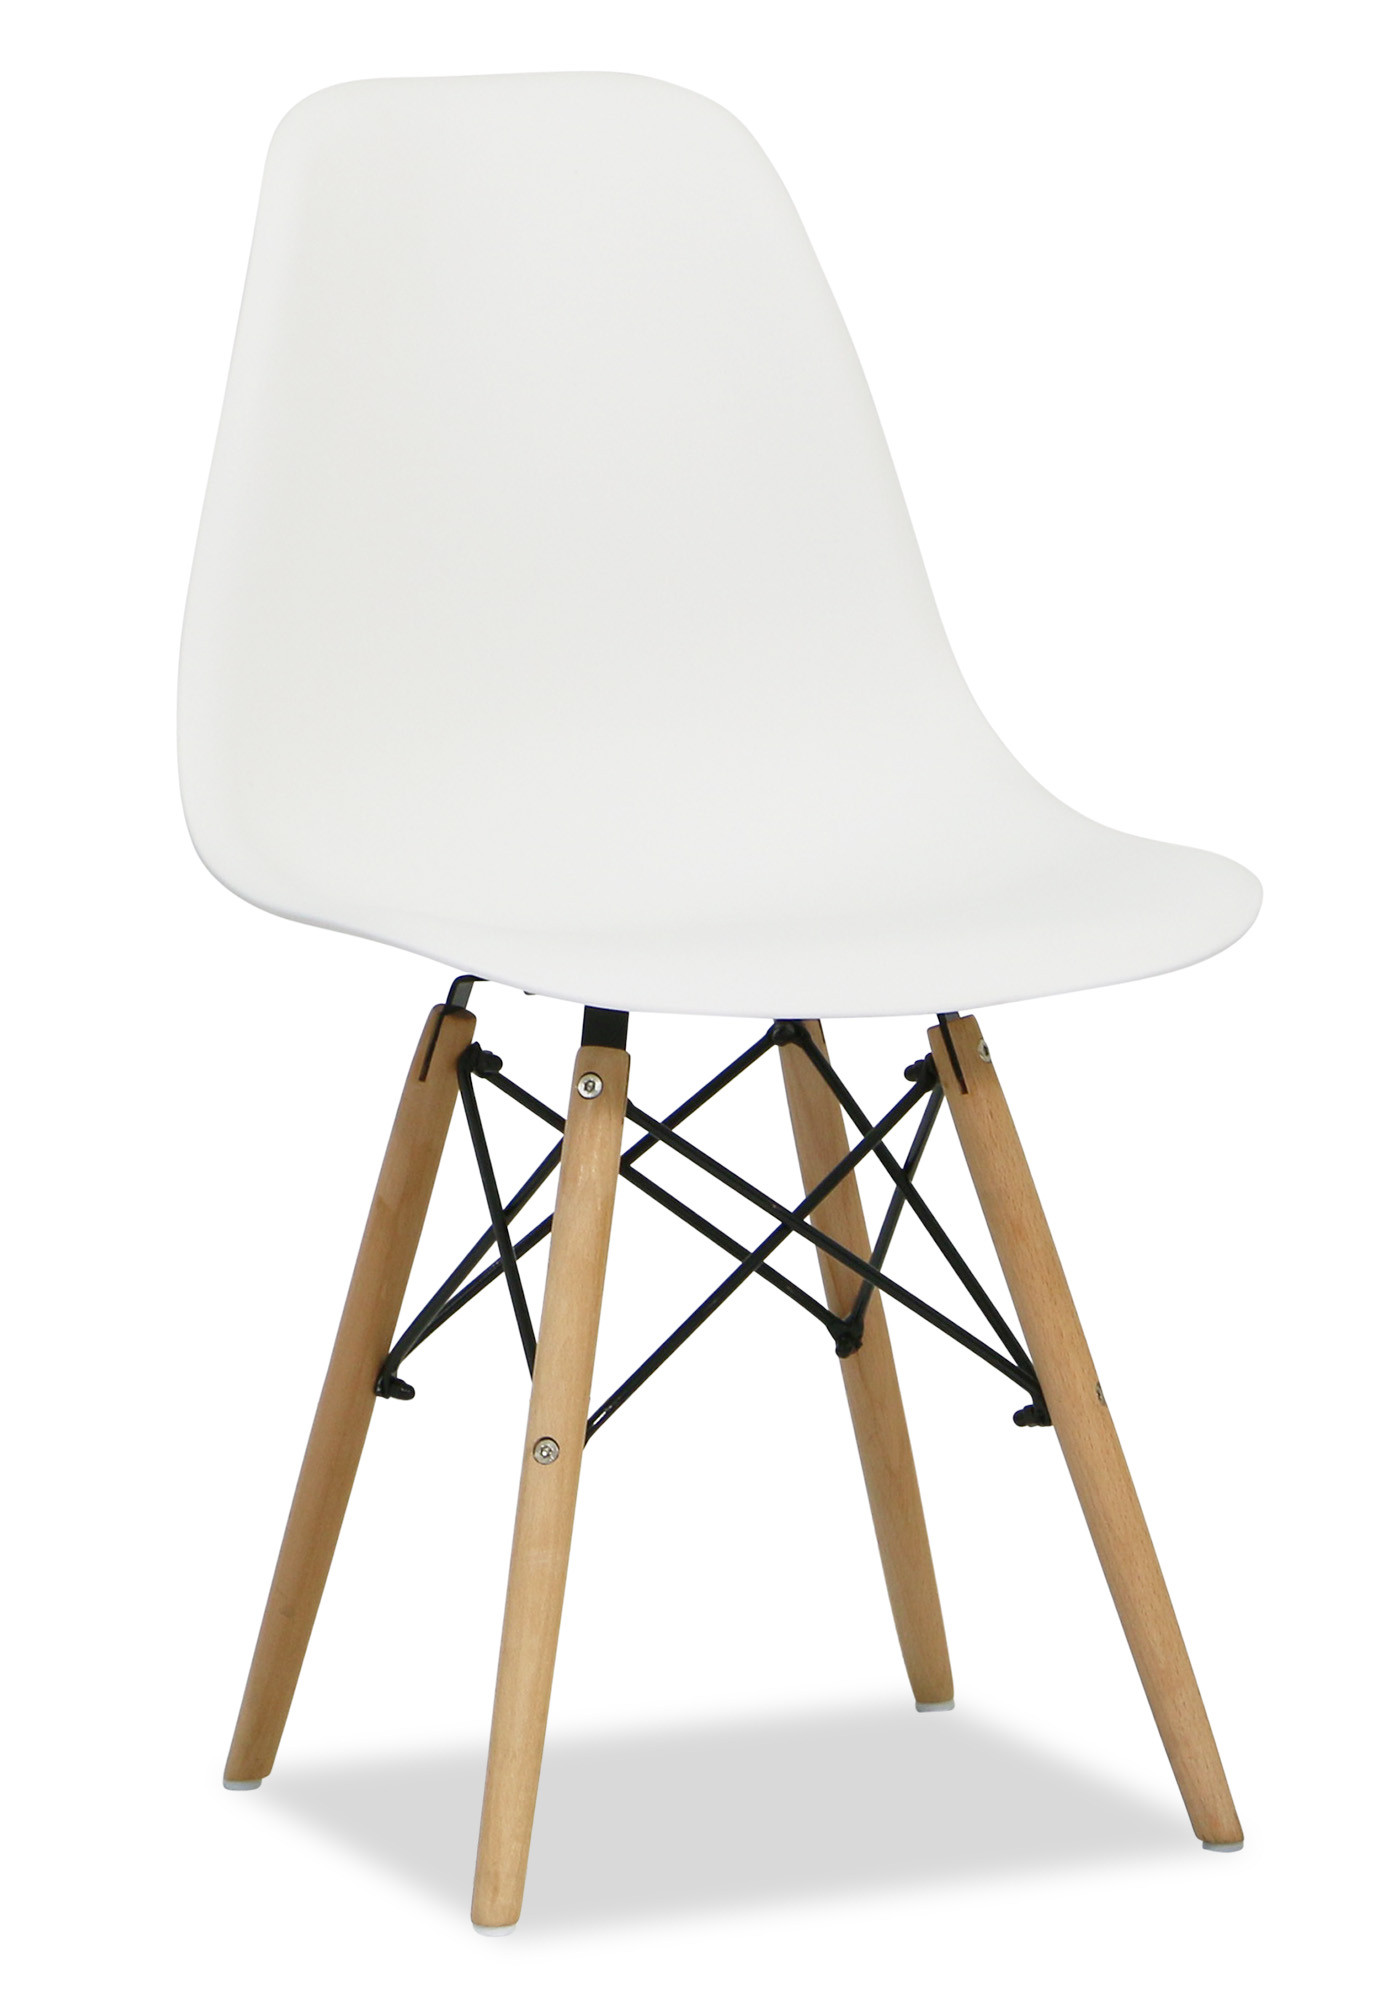 Eames White Replica Designer Chair. Display Gallery Item 1; Display Gallery  Item 2; Display Gallery Item 3 ...